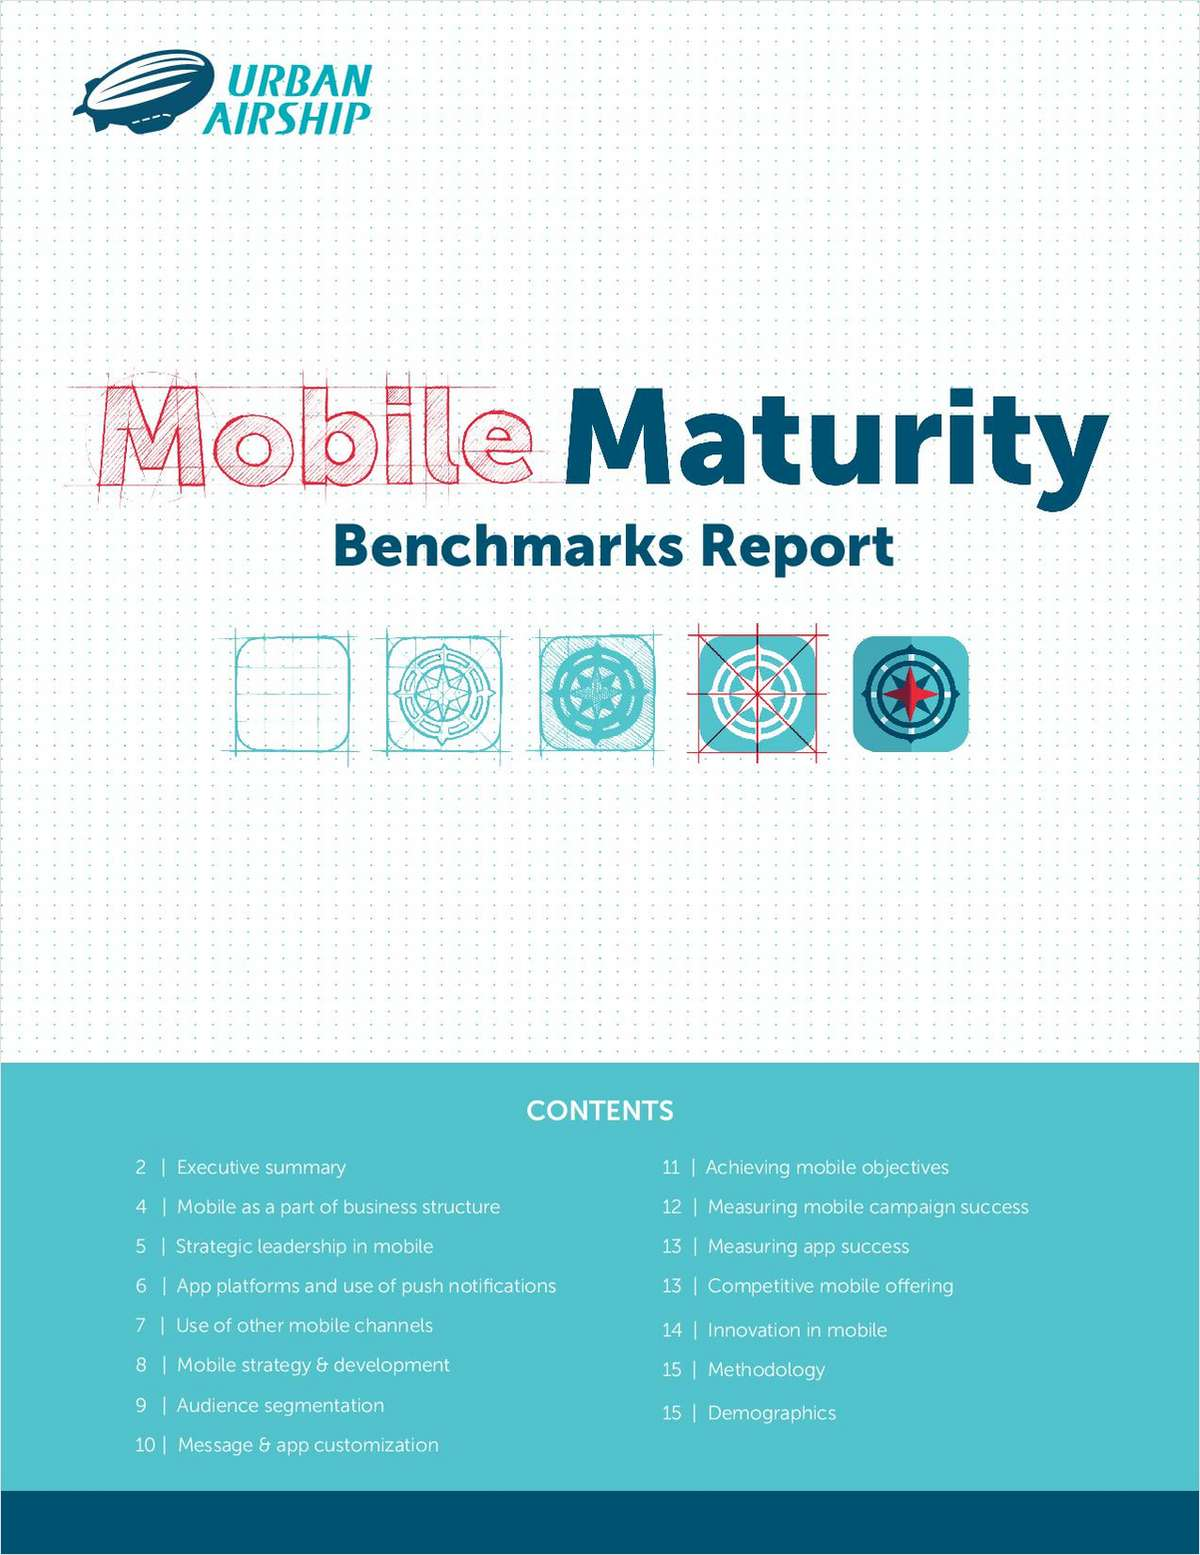 Mobile Benchmarks Report